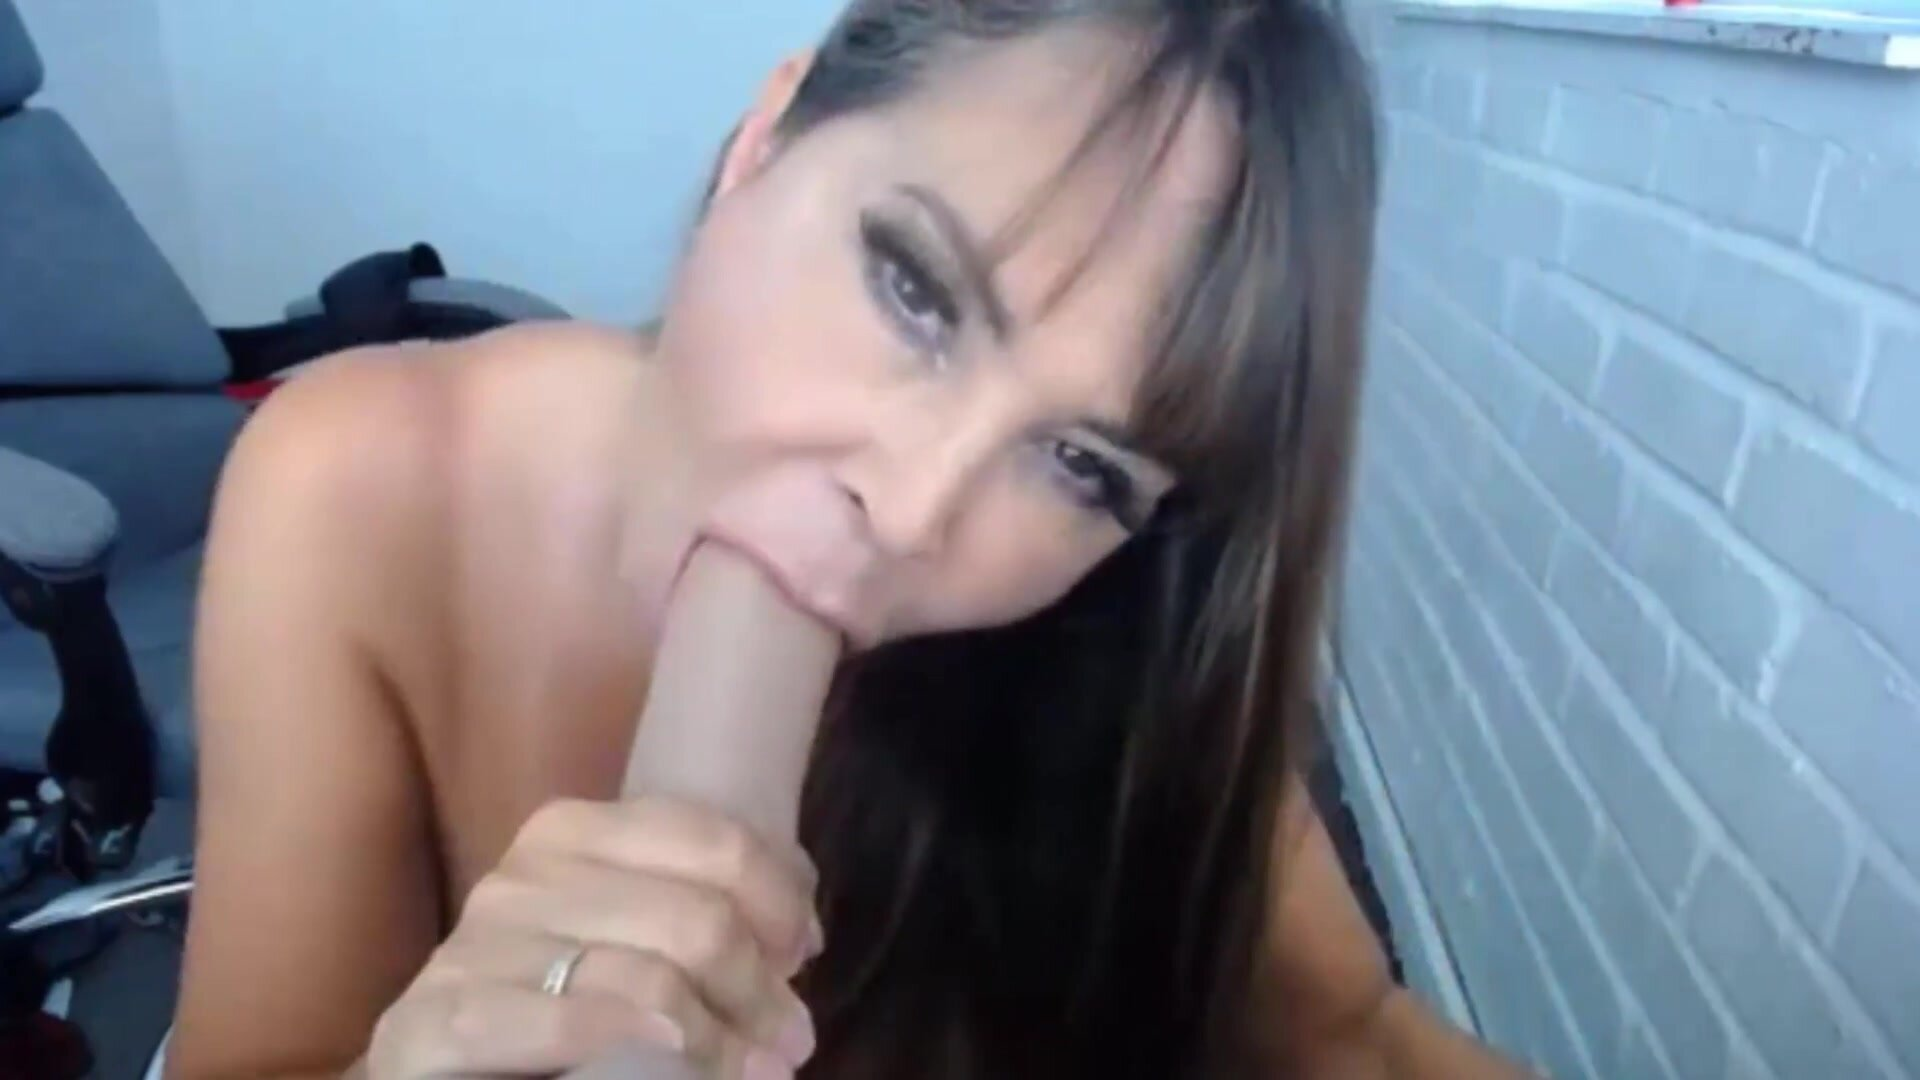 British dirty talking goddess Lolly with immense melons